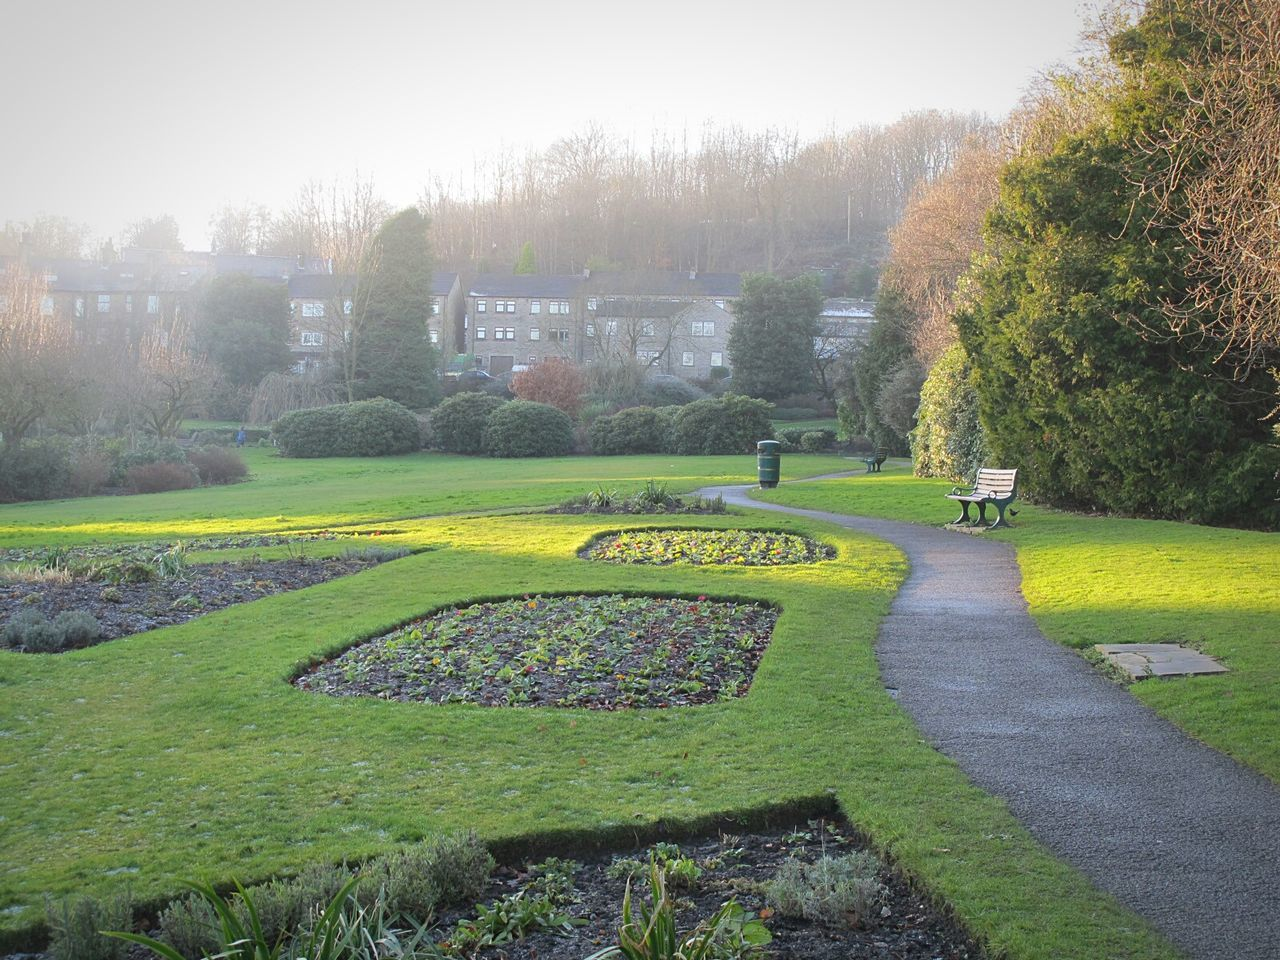 Bronte Sisters Parkscape Tranquil Scene Scenics Fine Art Photograhy Eyeemphotography EyeEmbestshots. Change Landscape Valleyside Brontesisters Frosty Days Cold Temperature Outdoors No People Beauty In Nature Shadow Green Color Sunlight Building Exterior Frosted Winter Freshness Flower Nature